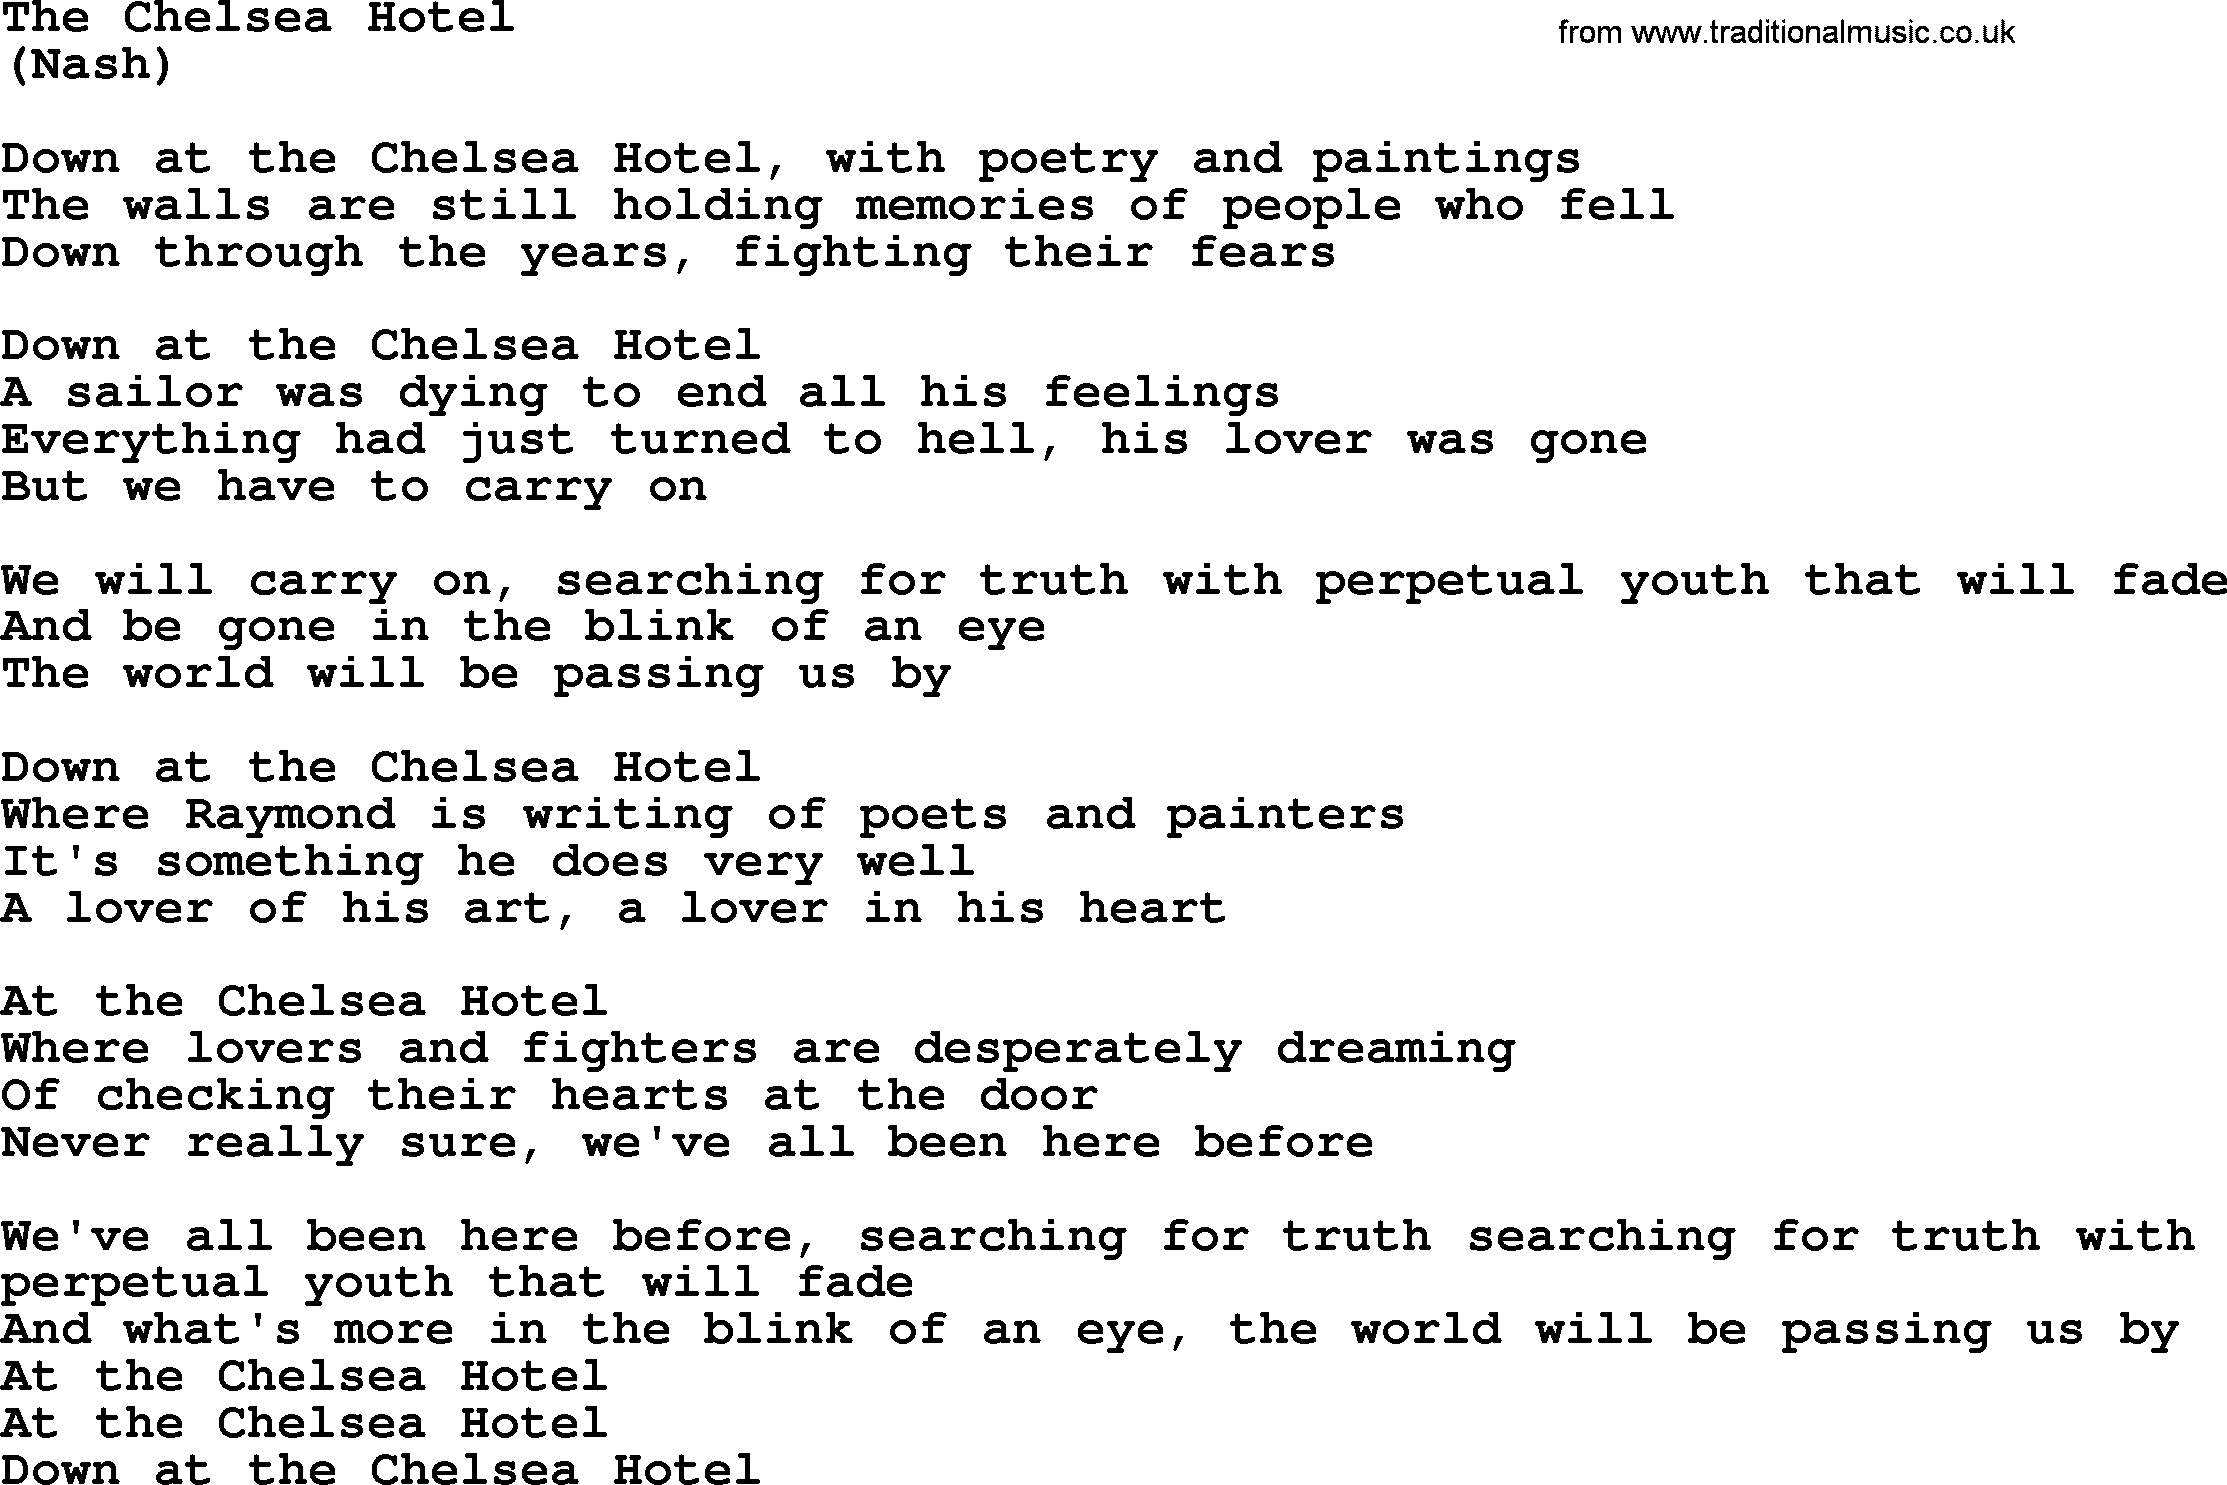 The Chelsea Hotel, by The Byrds - lyrics with pdf